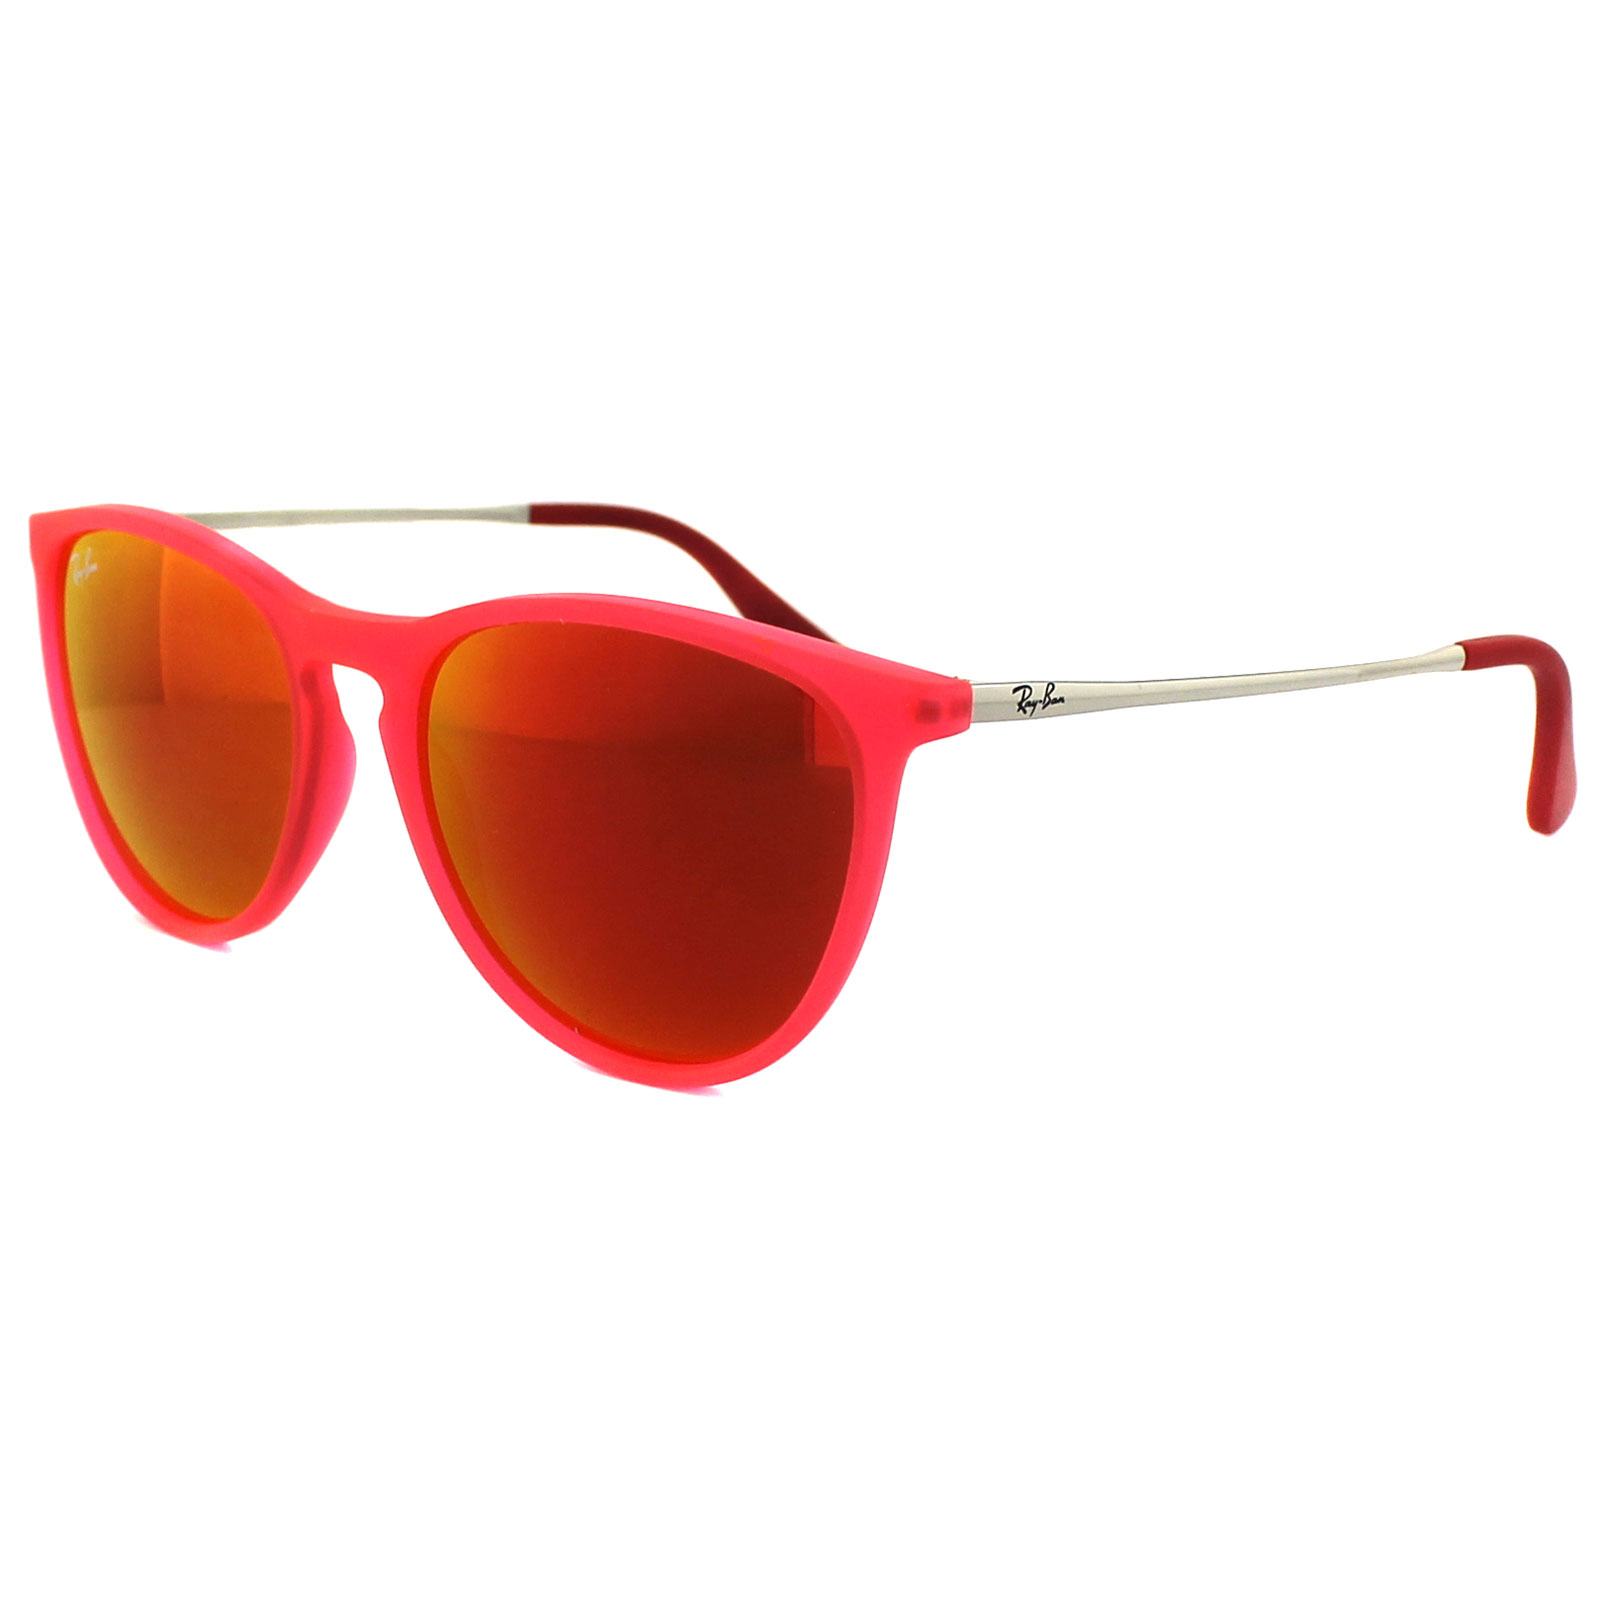 8acedf13b5 Sentinel Ray-Ban Junior Sunglasses Izzy 9060 70096Q Rubber Pink Red Mirror